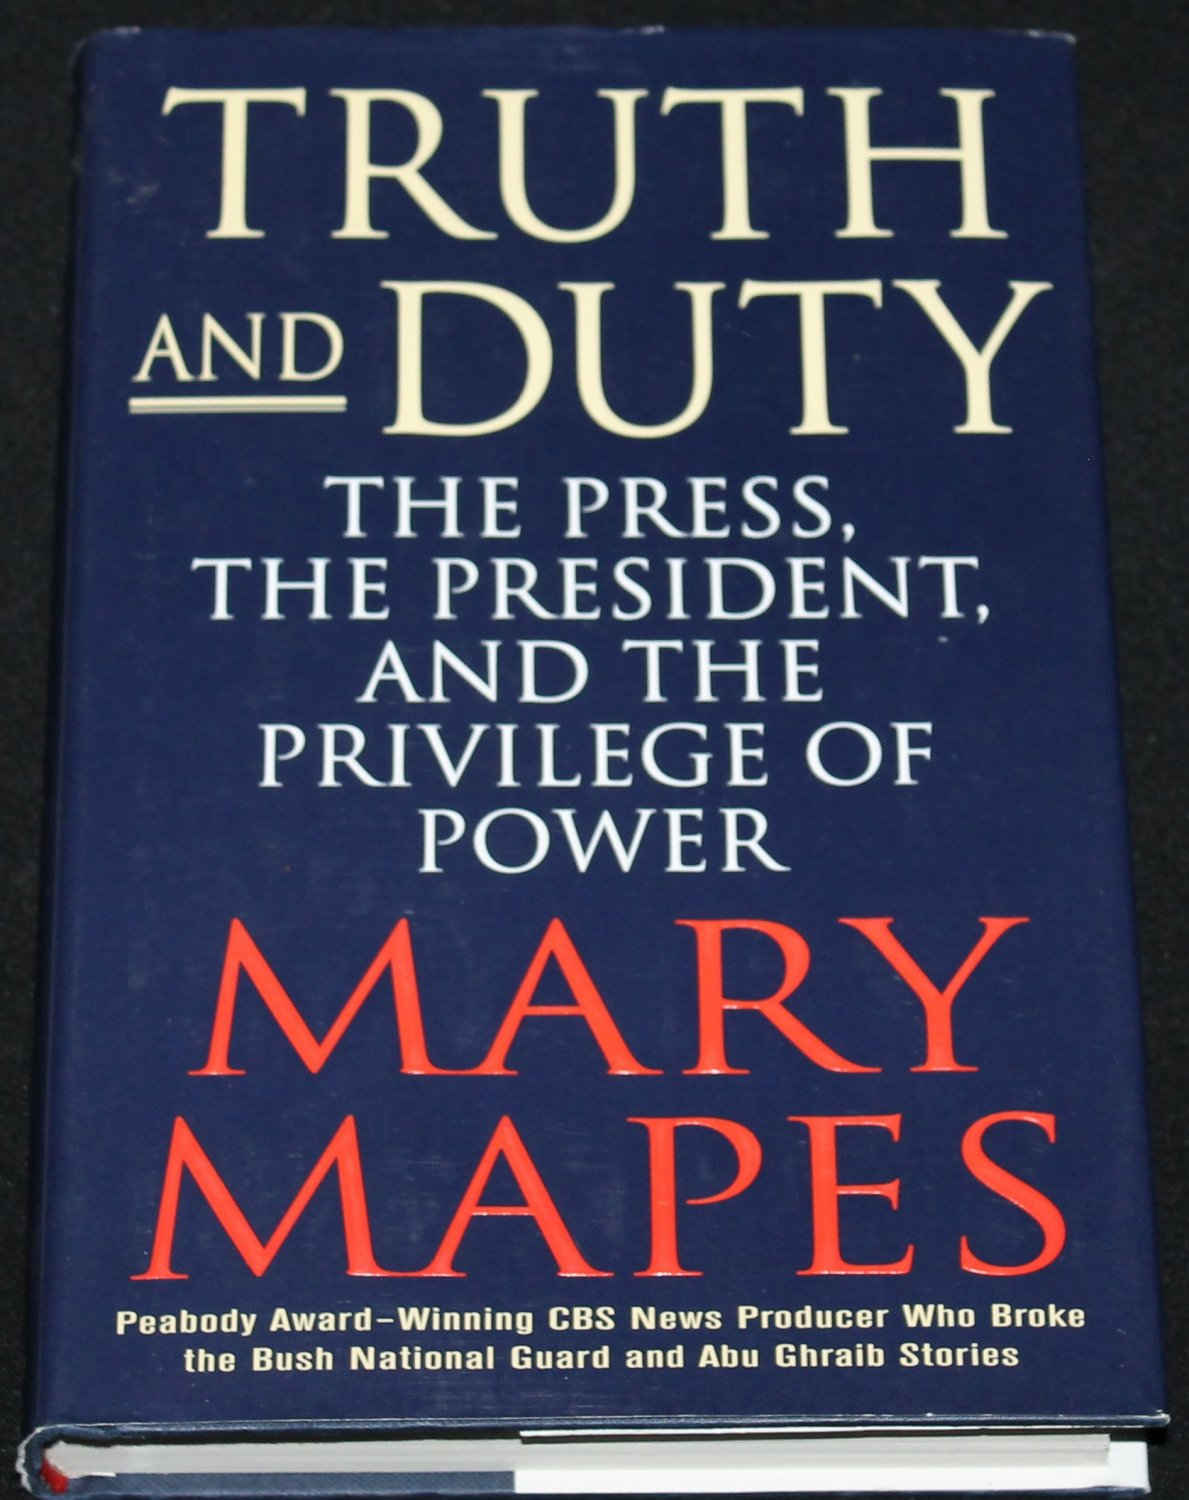 Truth and Duty the Press President and the Privilege of Power politics political book Mary Maples